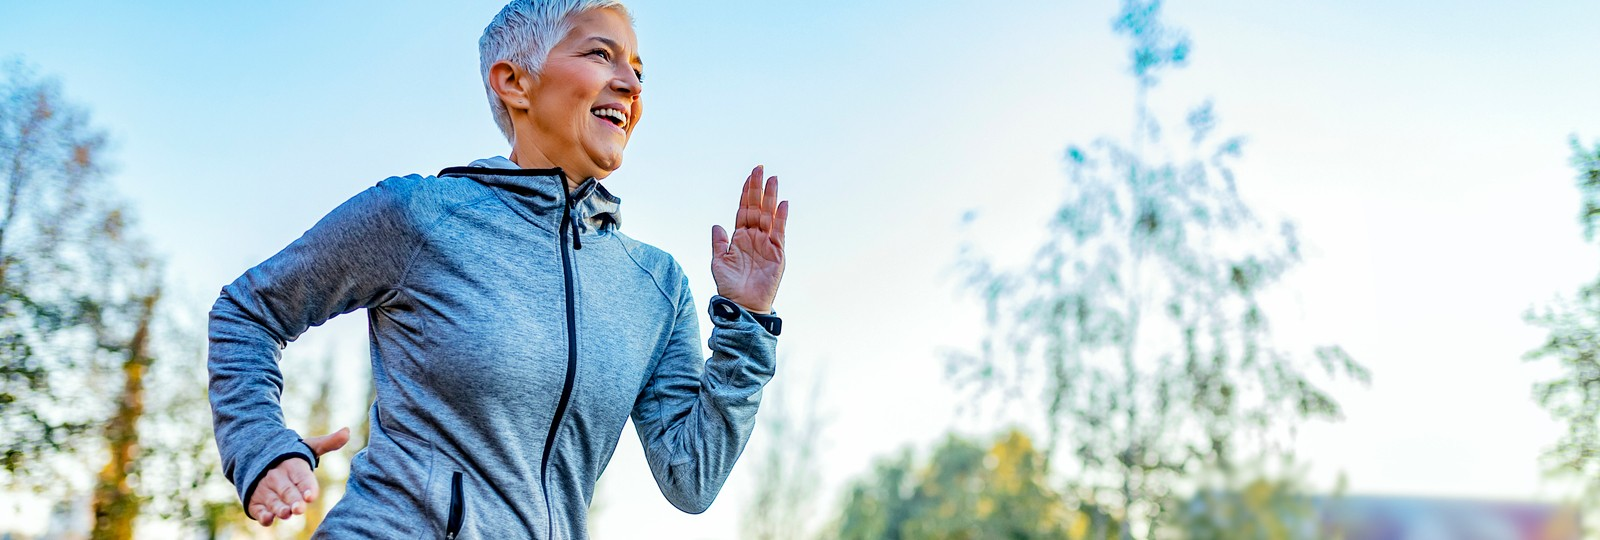 Happy older woman jogging outside